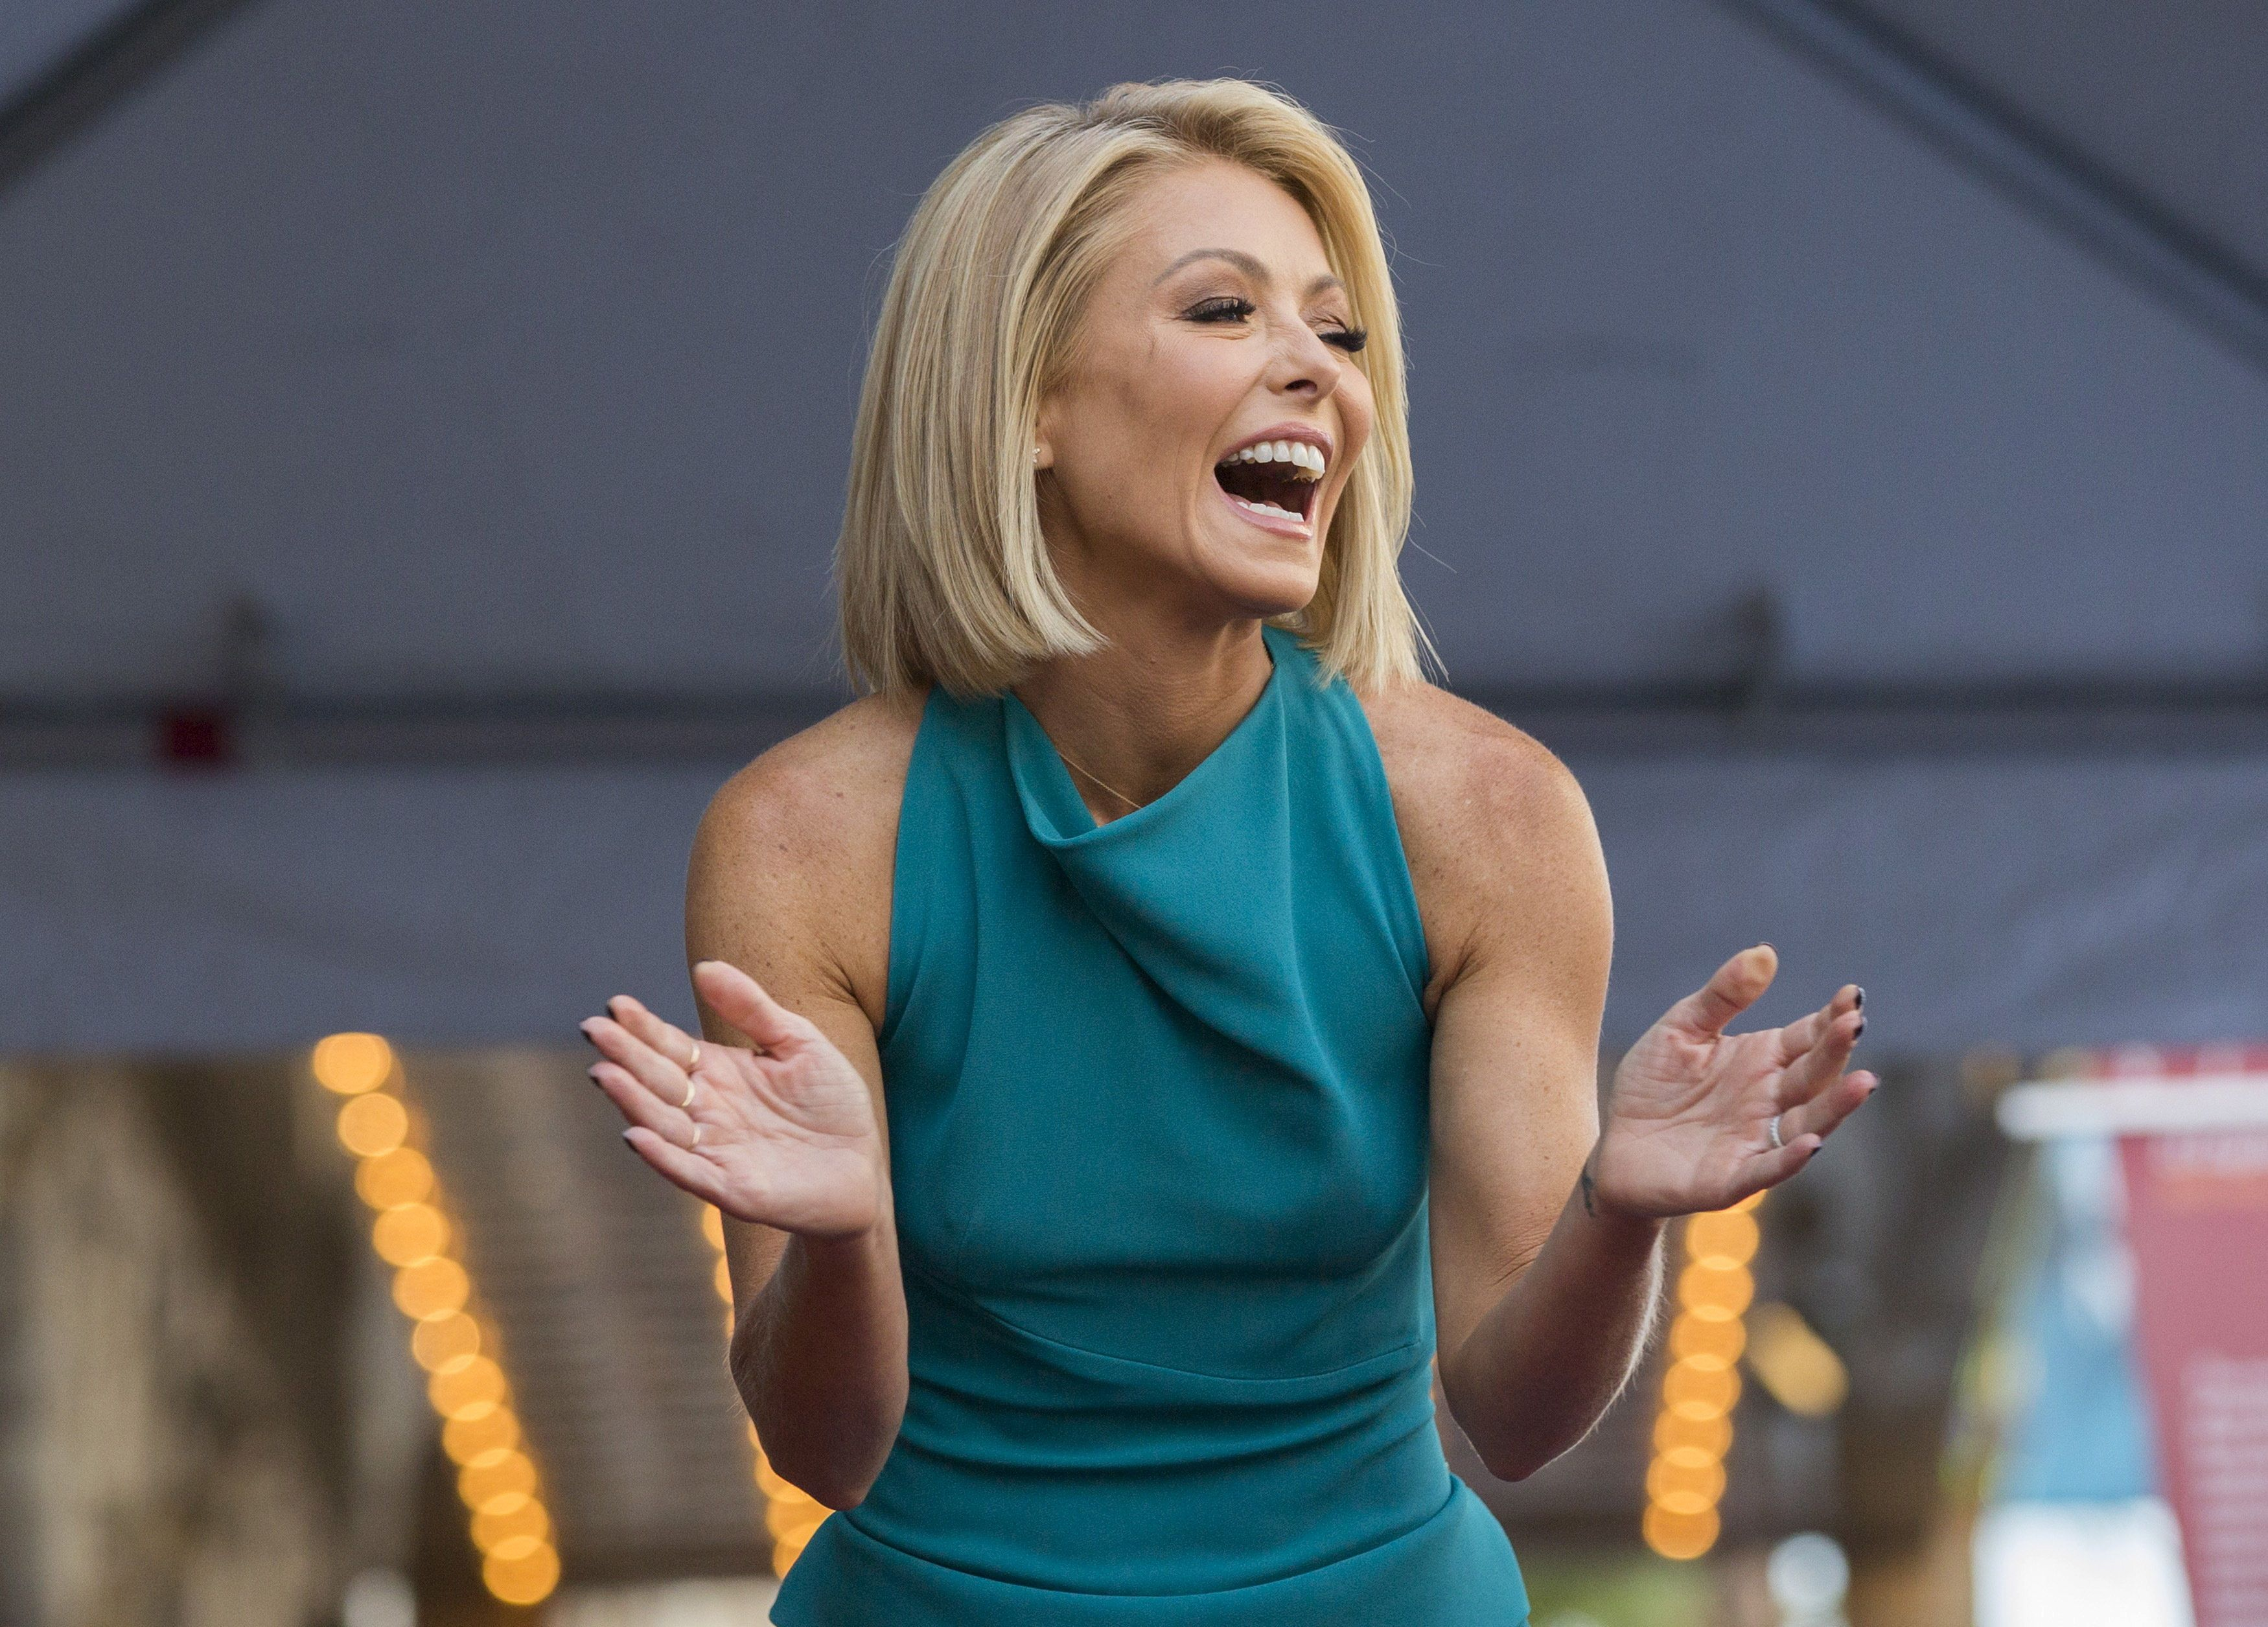 Television personality Kelly Ripa laughs before unveiling her star on the Hollywood Walk of Fame in Los Angeles, California October 12, 2015.  REUTERS/Mario Anzuoni